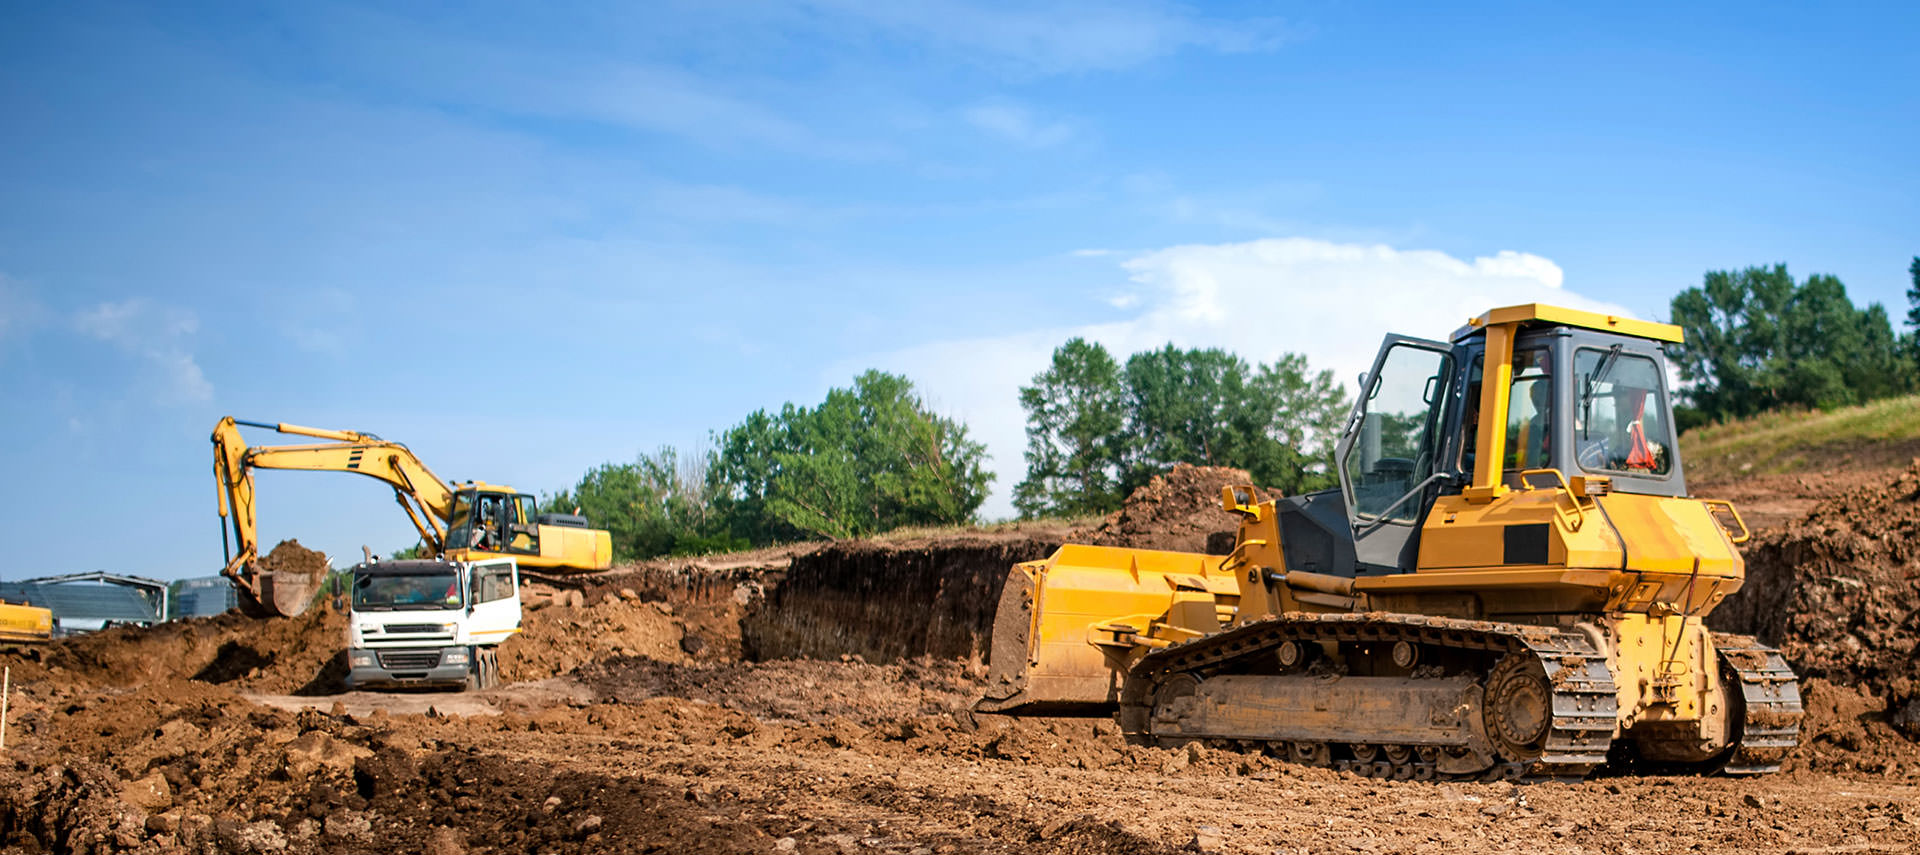 Site work ct mechanical contractor ct mobile boilers ct for Site in construction